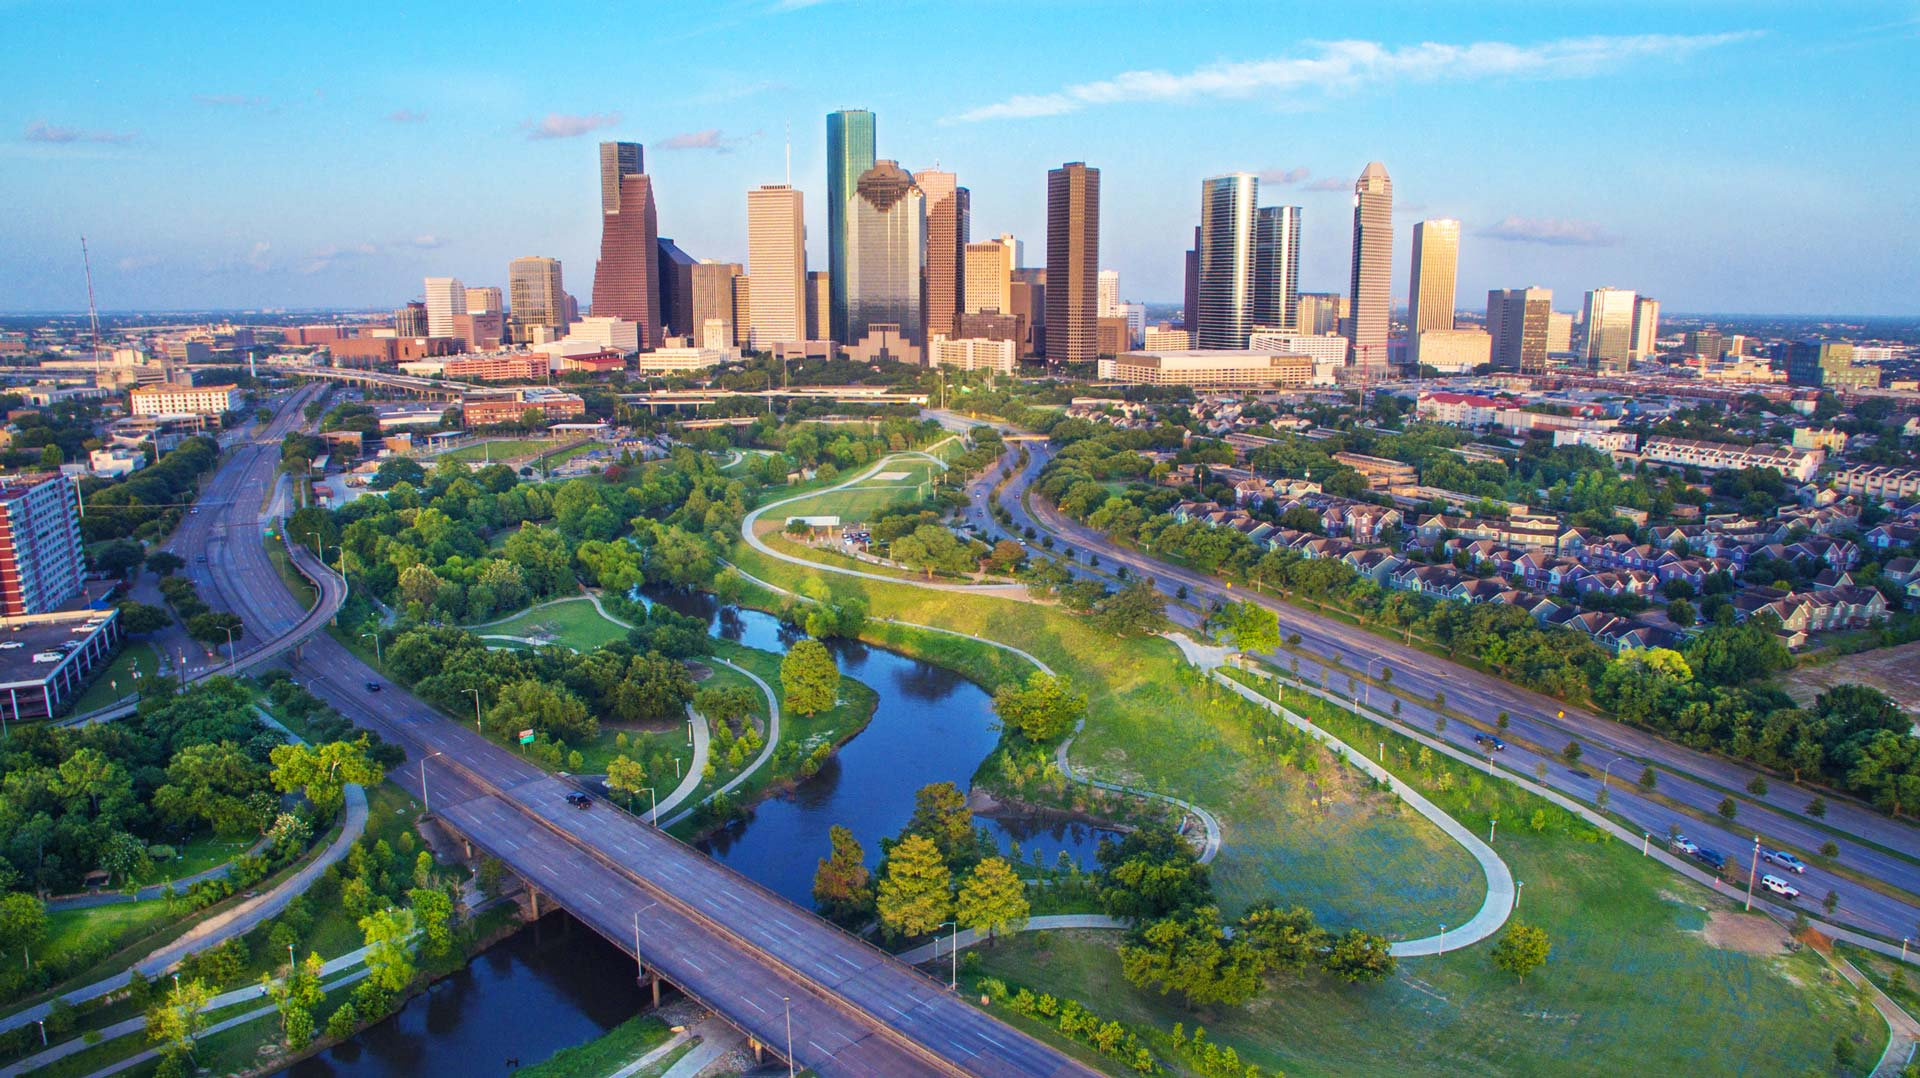 DOWNLOAD THE APP - Mommy Nearest Best place to take pictures in houston